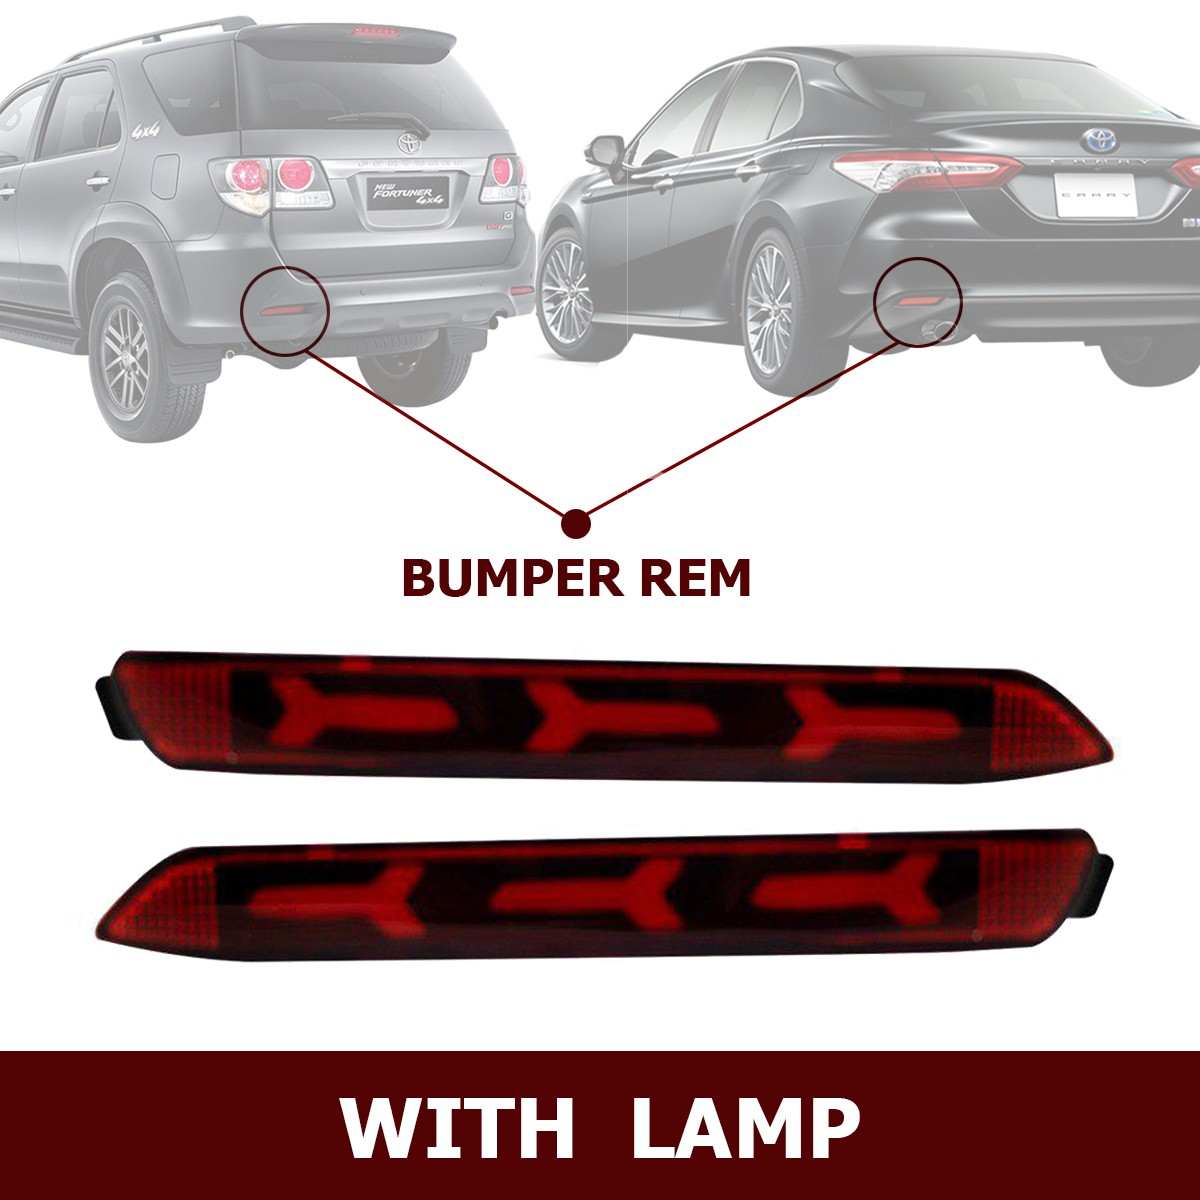 HIRO REAR REFLEKTOR LED BUMPER REM WITH LAMP FOR TOYOTA FORTUNER 2013 & TOYOTA CAMRY 2013